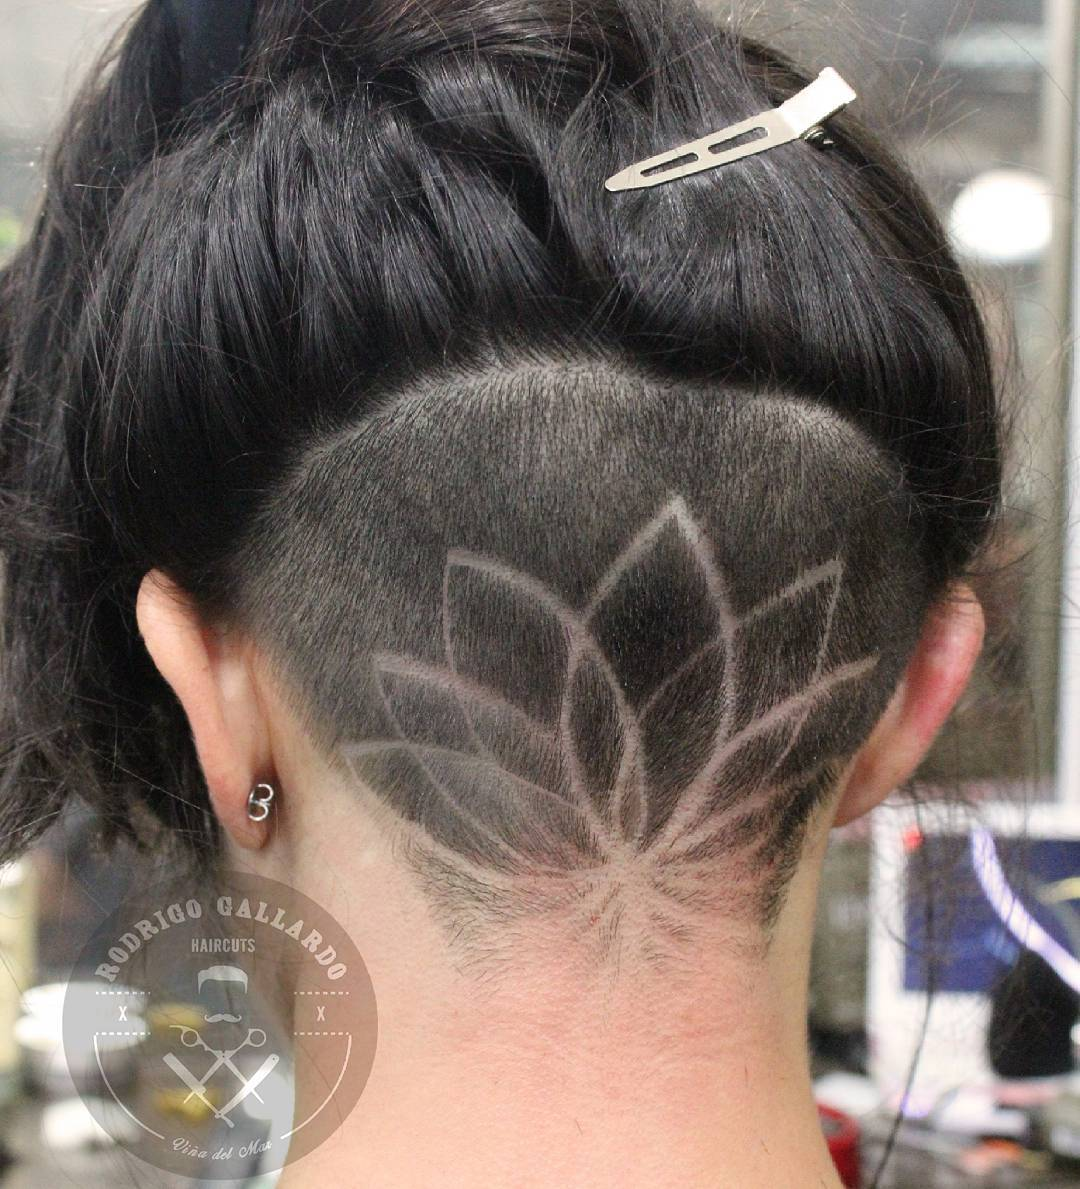 HAIR TATTOO (художественный выстриг волос)